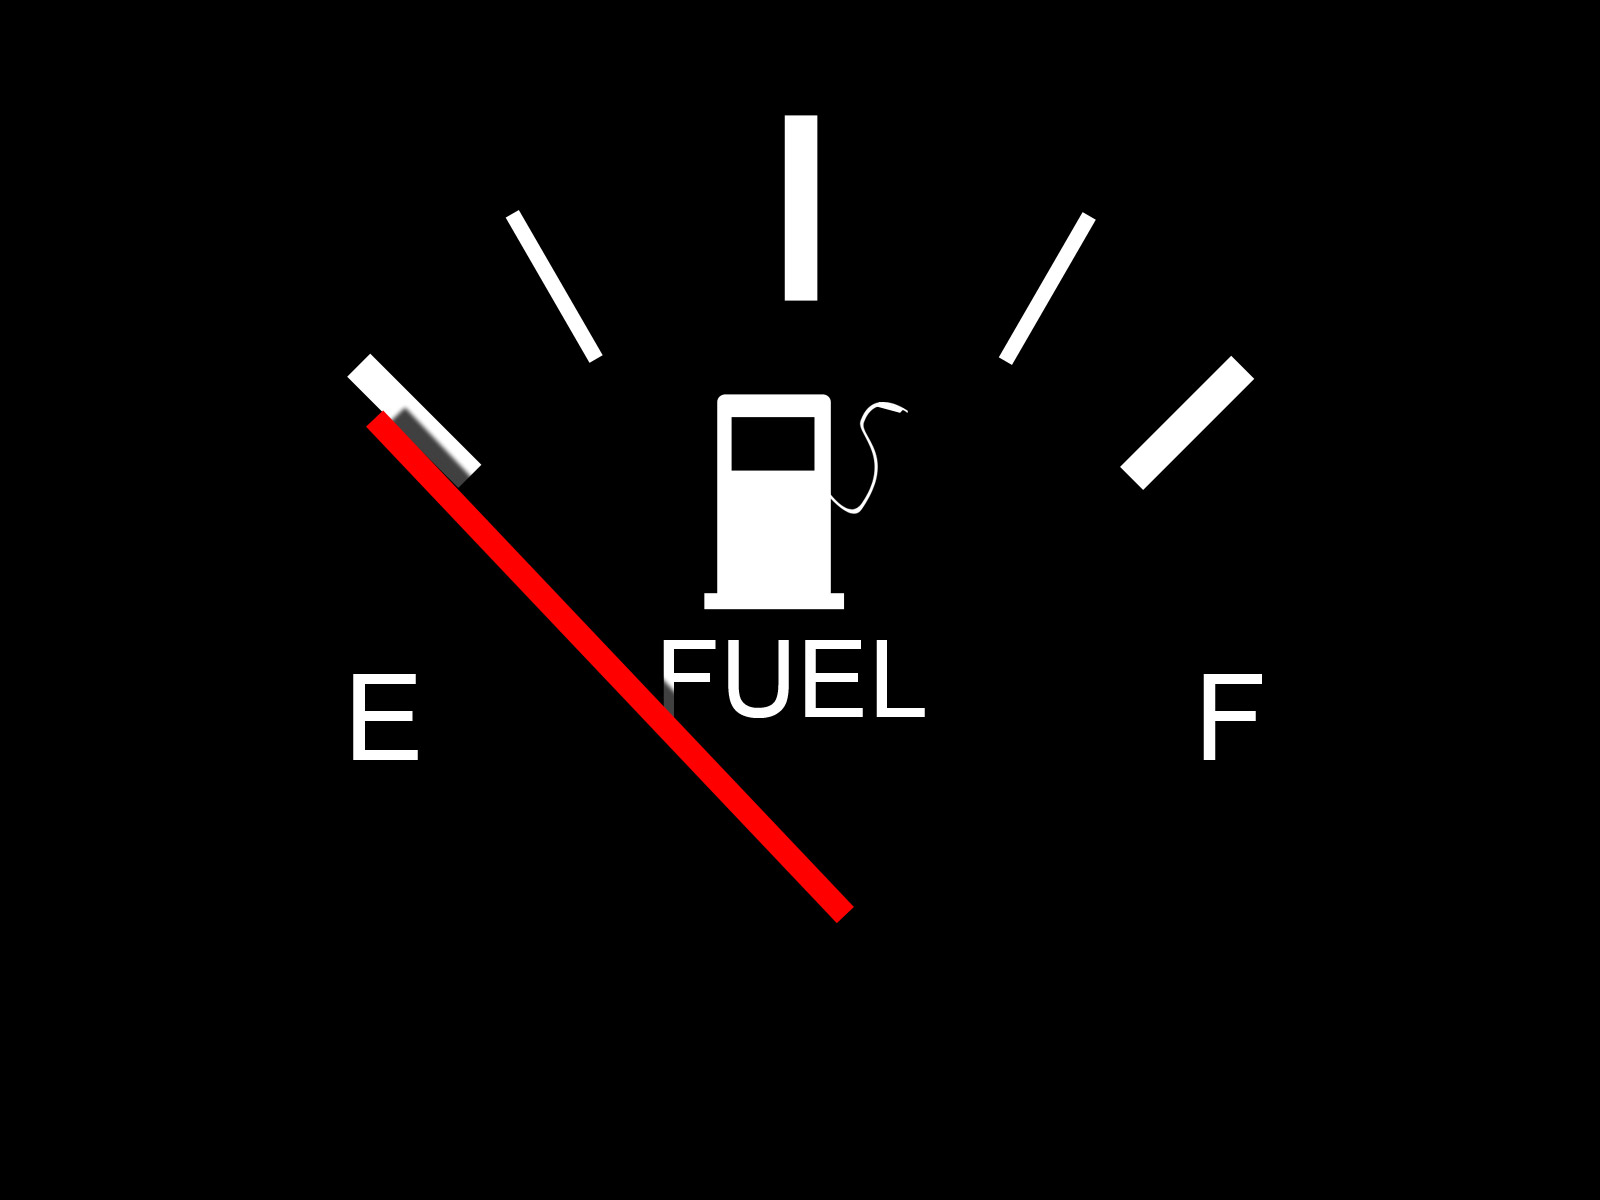 Work off the top of the tank fuel gauge publicscrutiny Images